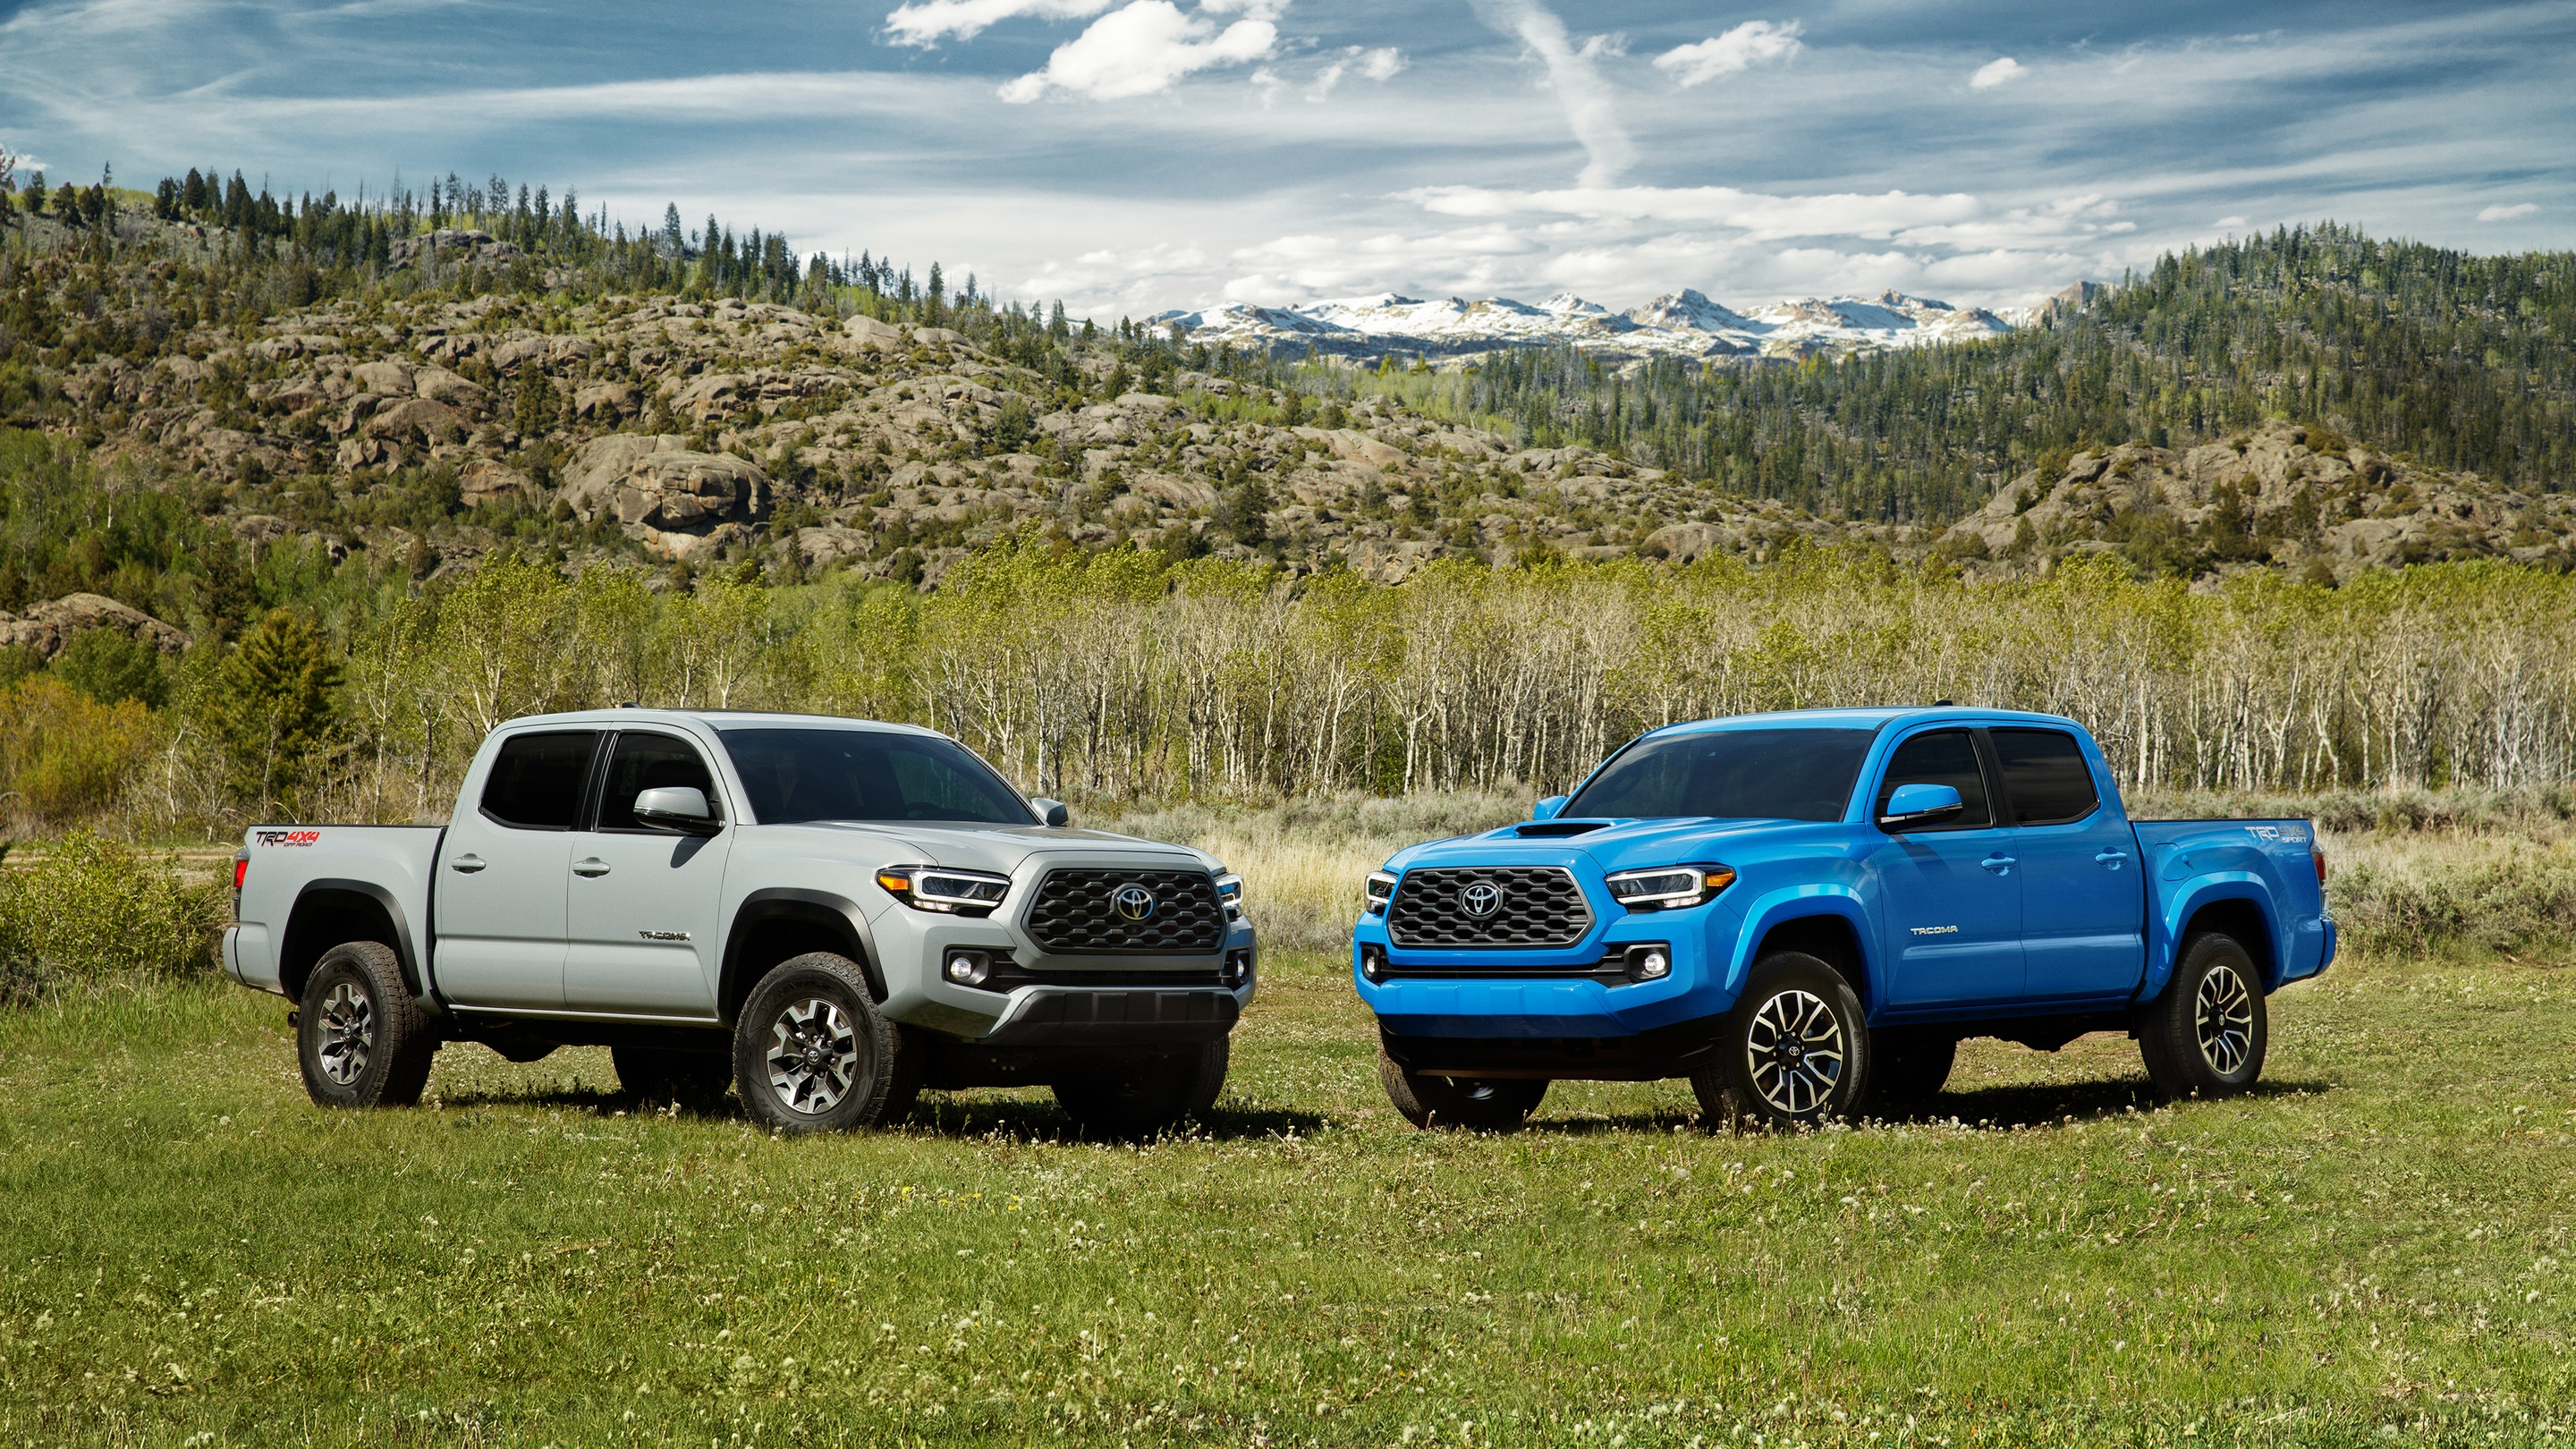 2020 Toyota Tacoma Front Blue and White Exterior